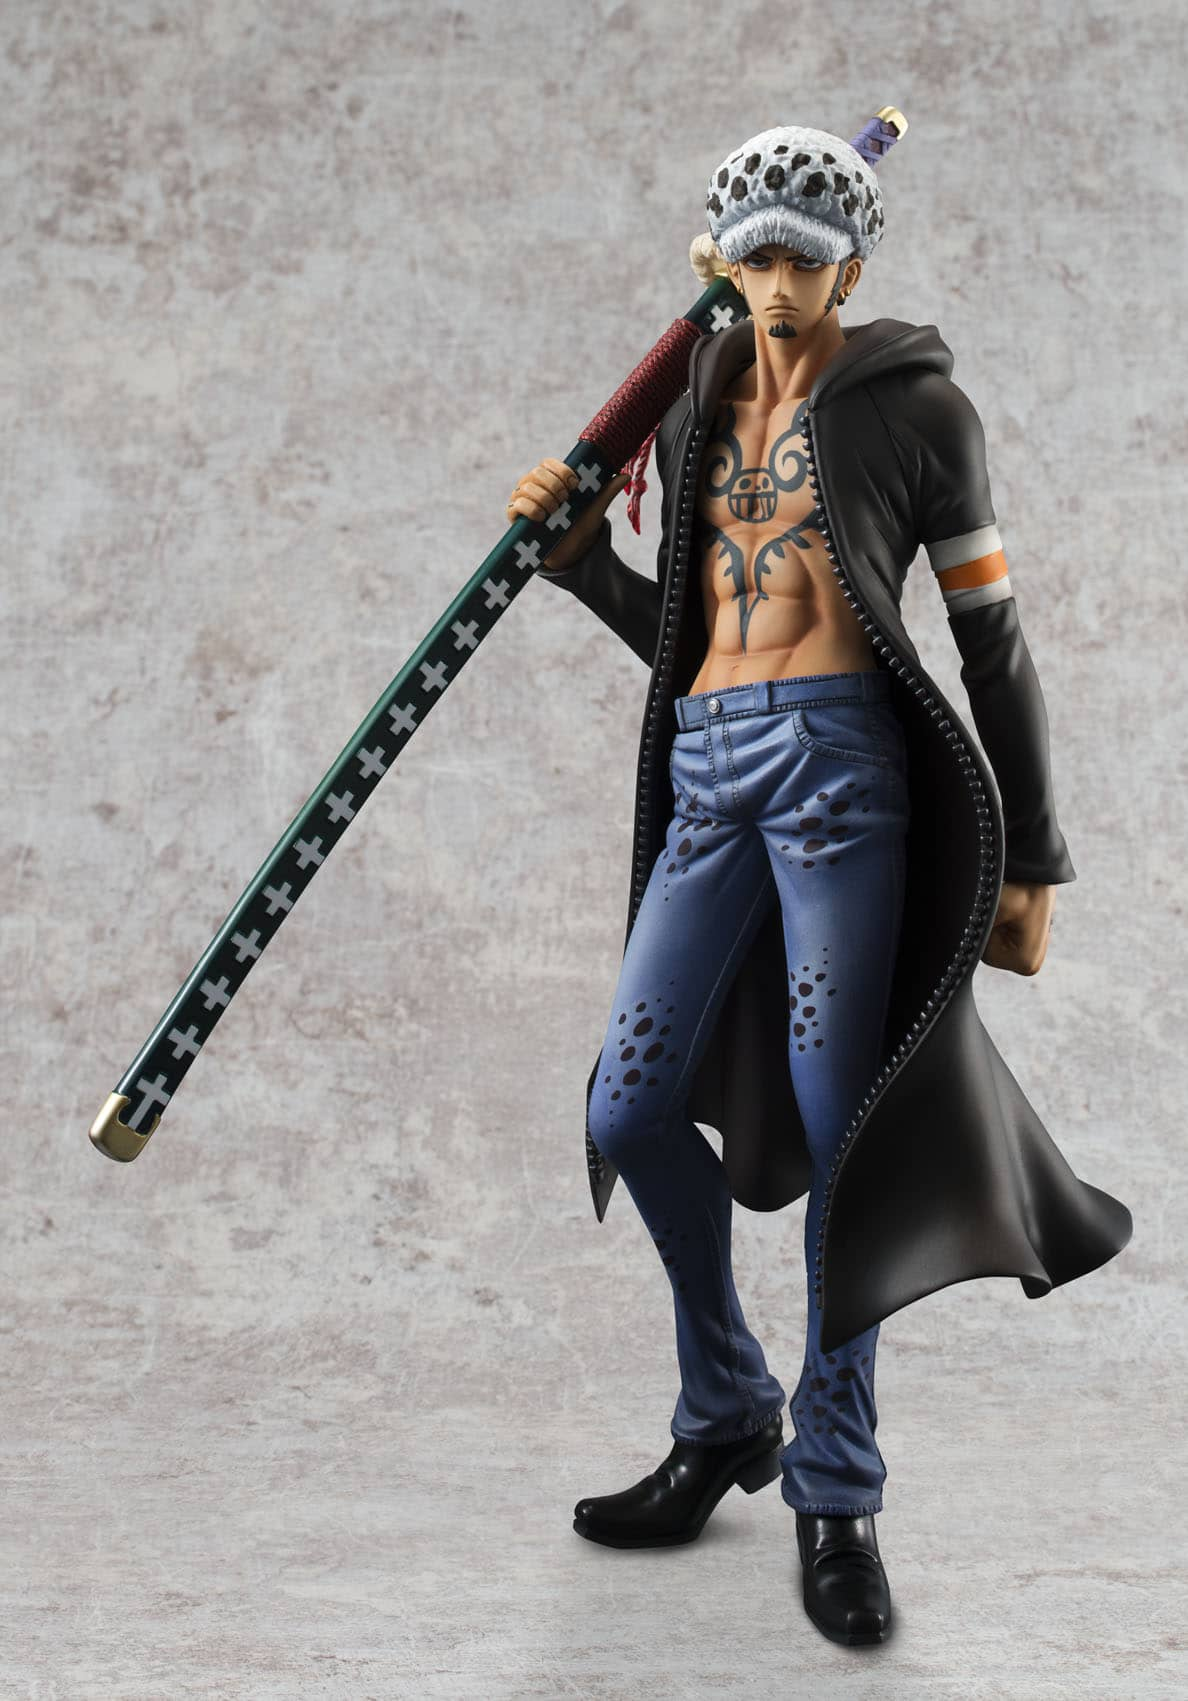 TRAFALGAR LAW FIGURA 24 CM ONE PIECE P.O.P. SAILING AGAIN